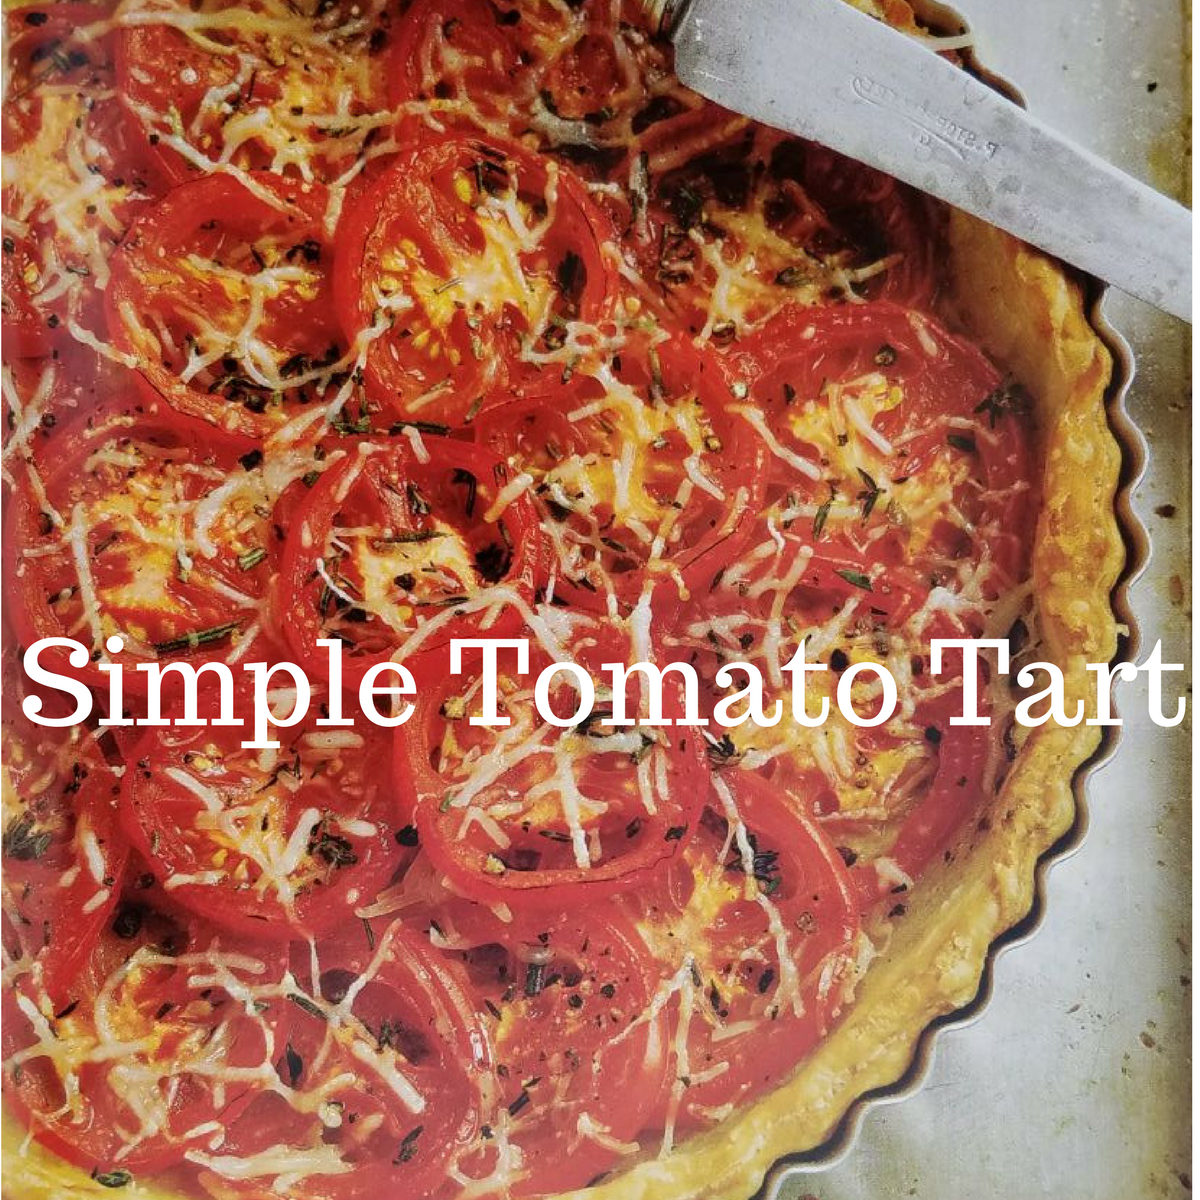 How to make a simple tomato tart